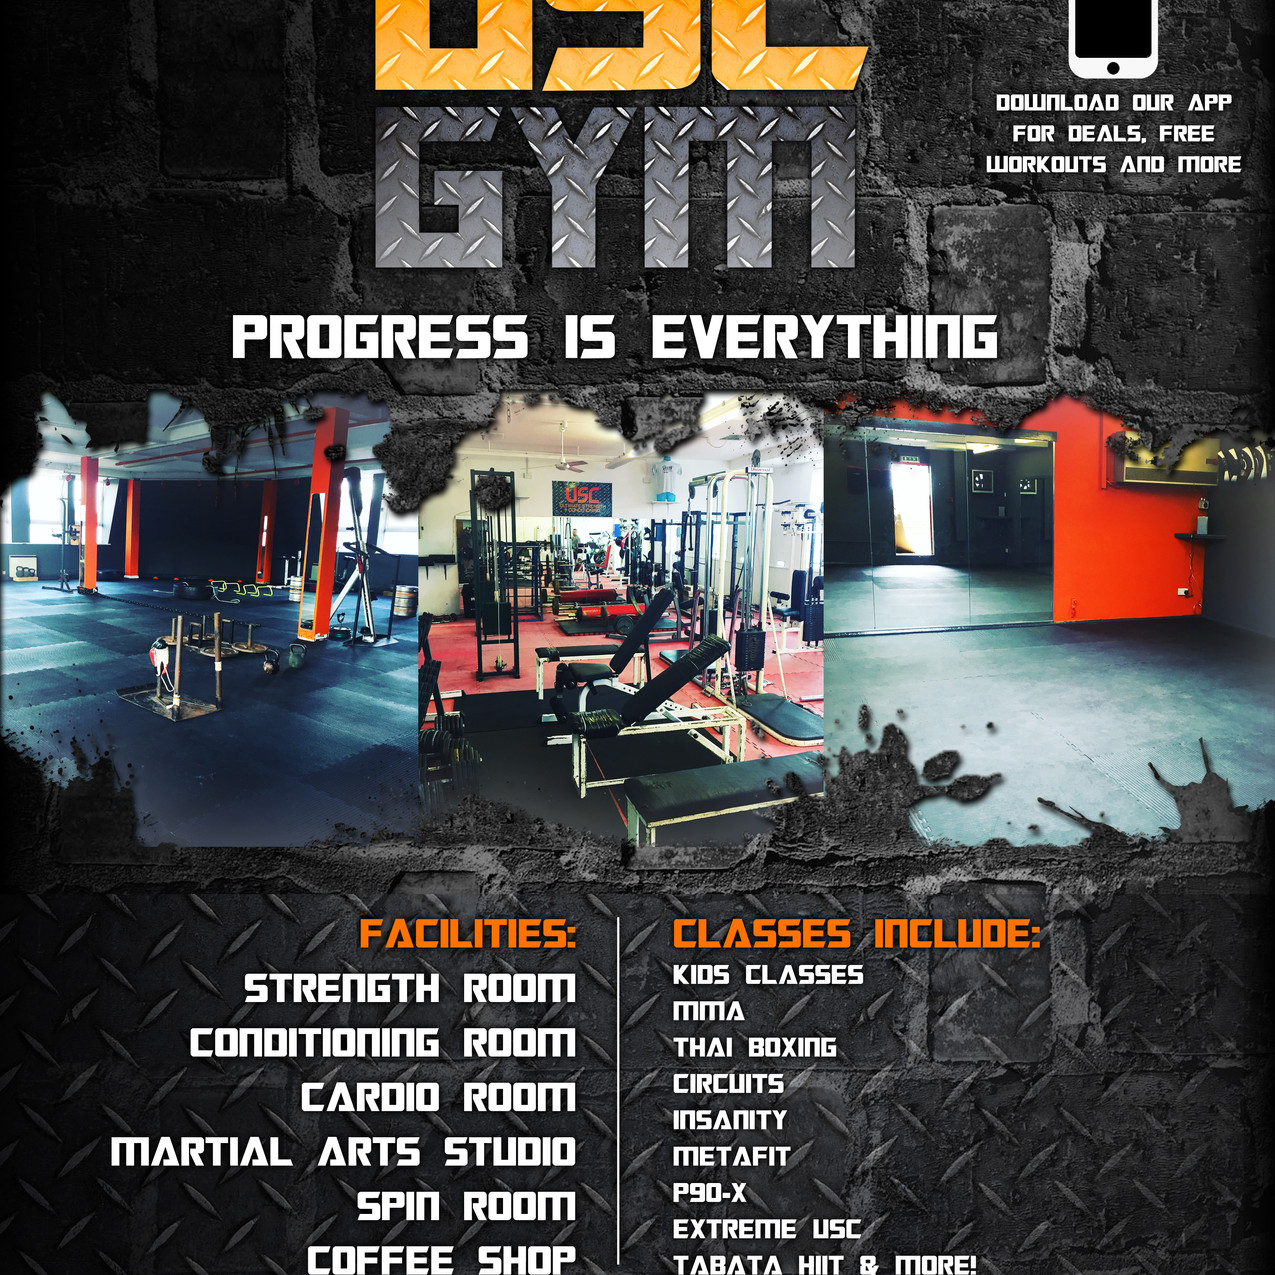 After USC GYM poster